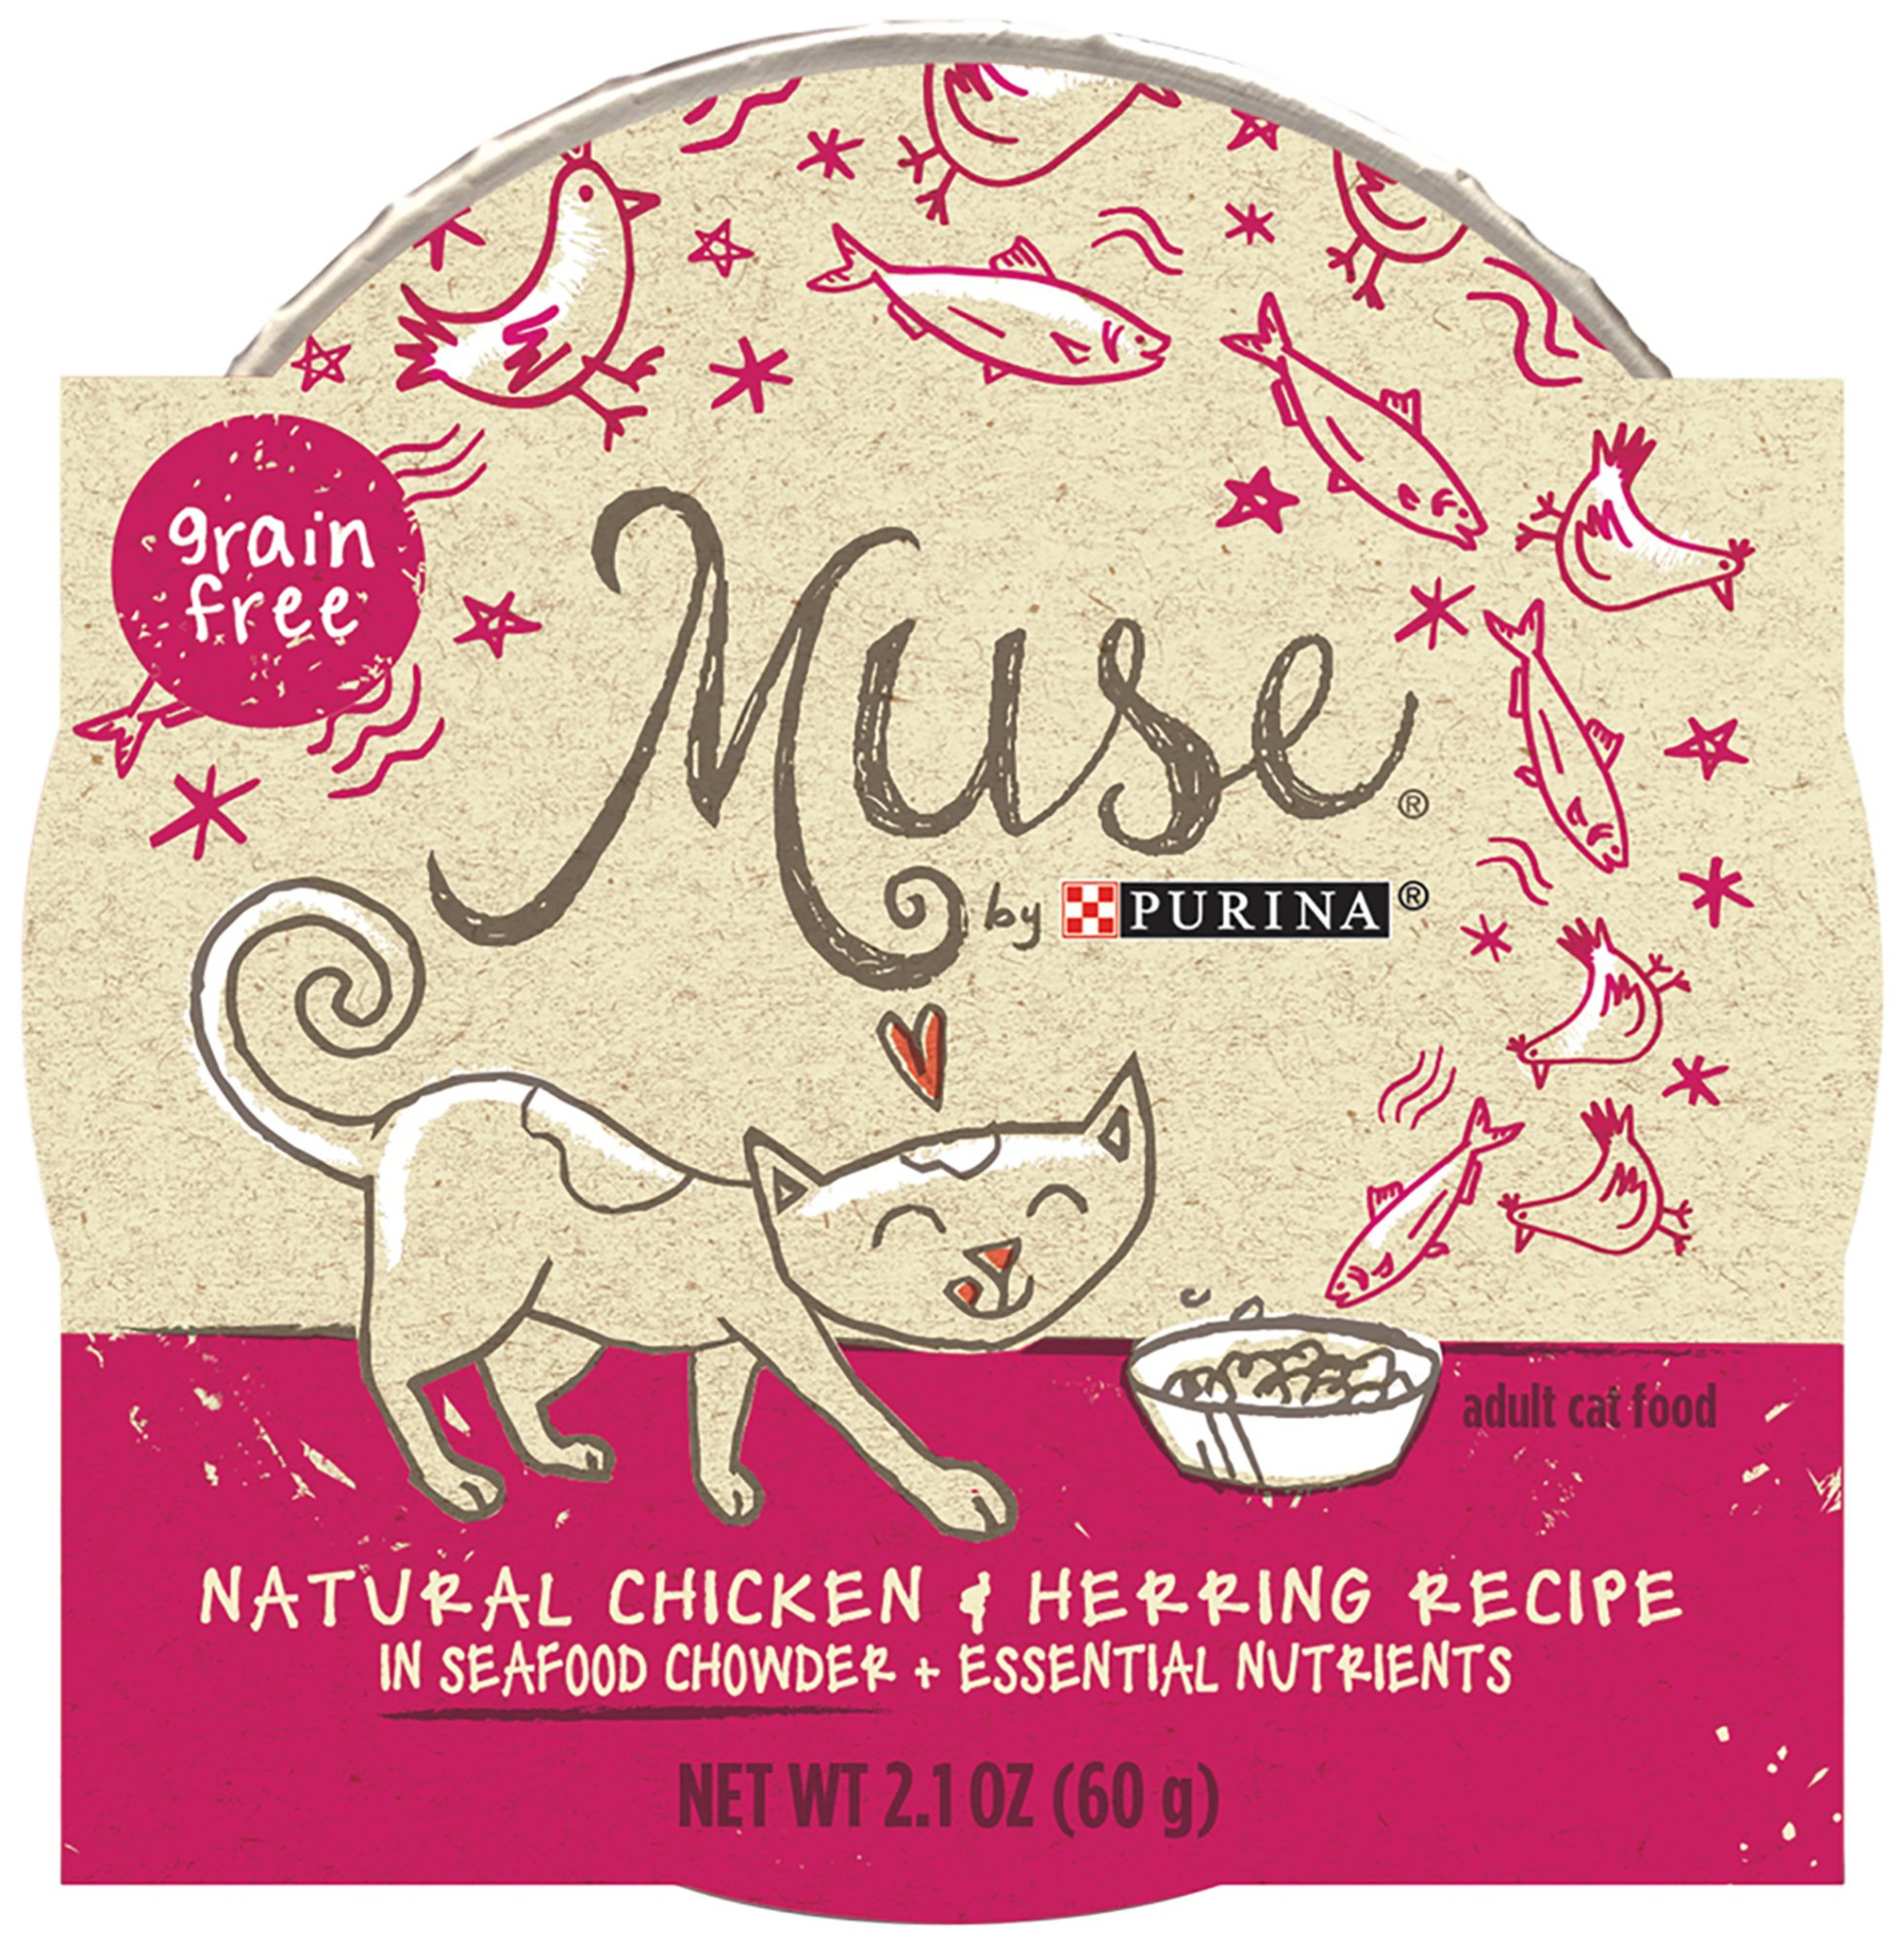 Muse by Purina Natural Chicken & Herring Recipe in a Seafood Chowder Cat Food